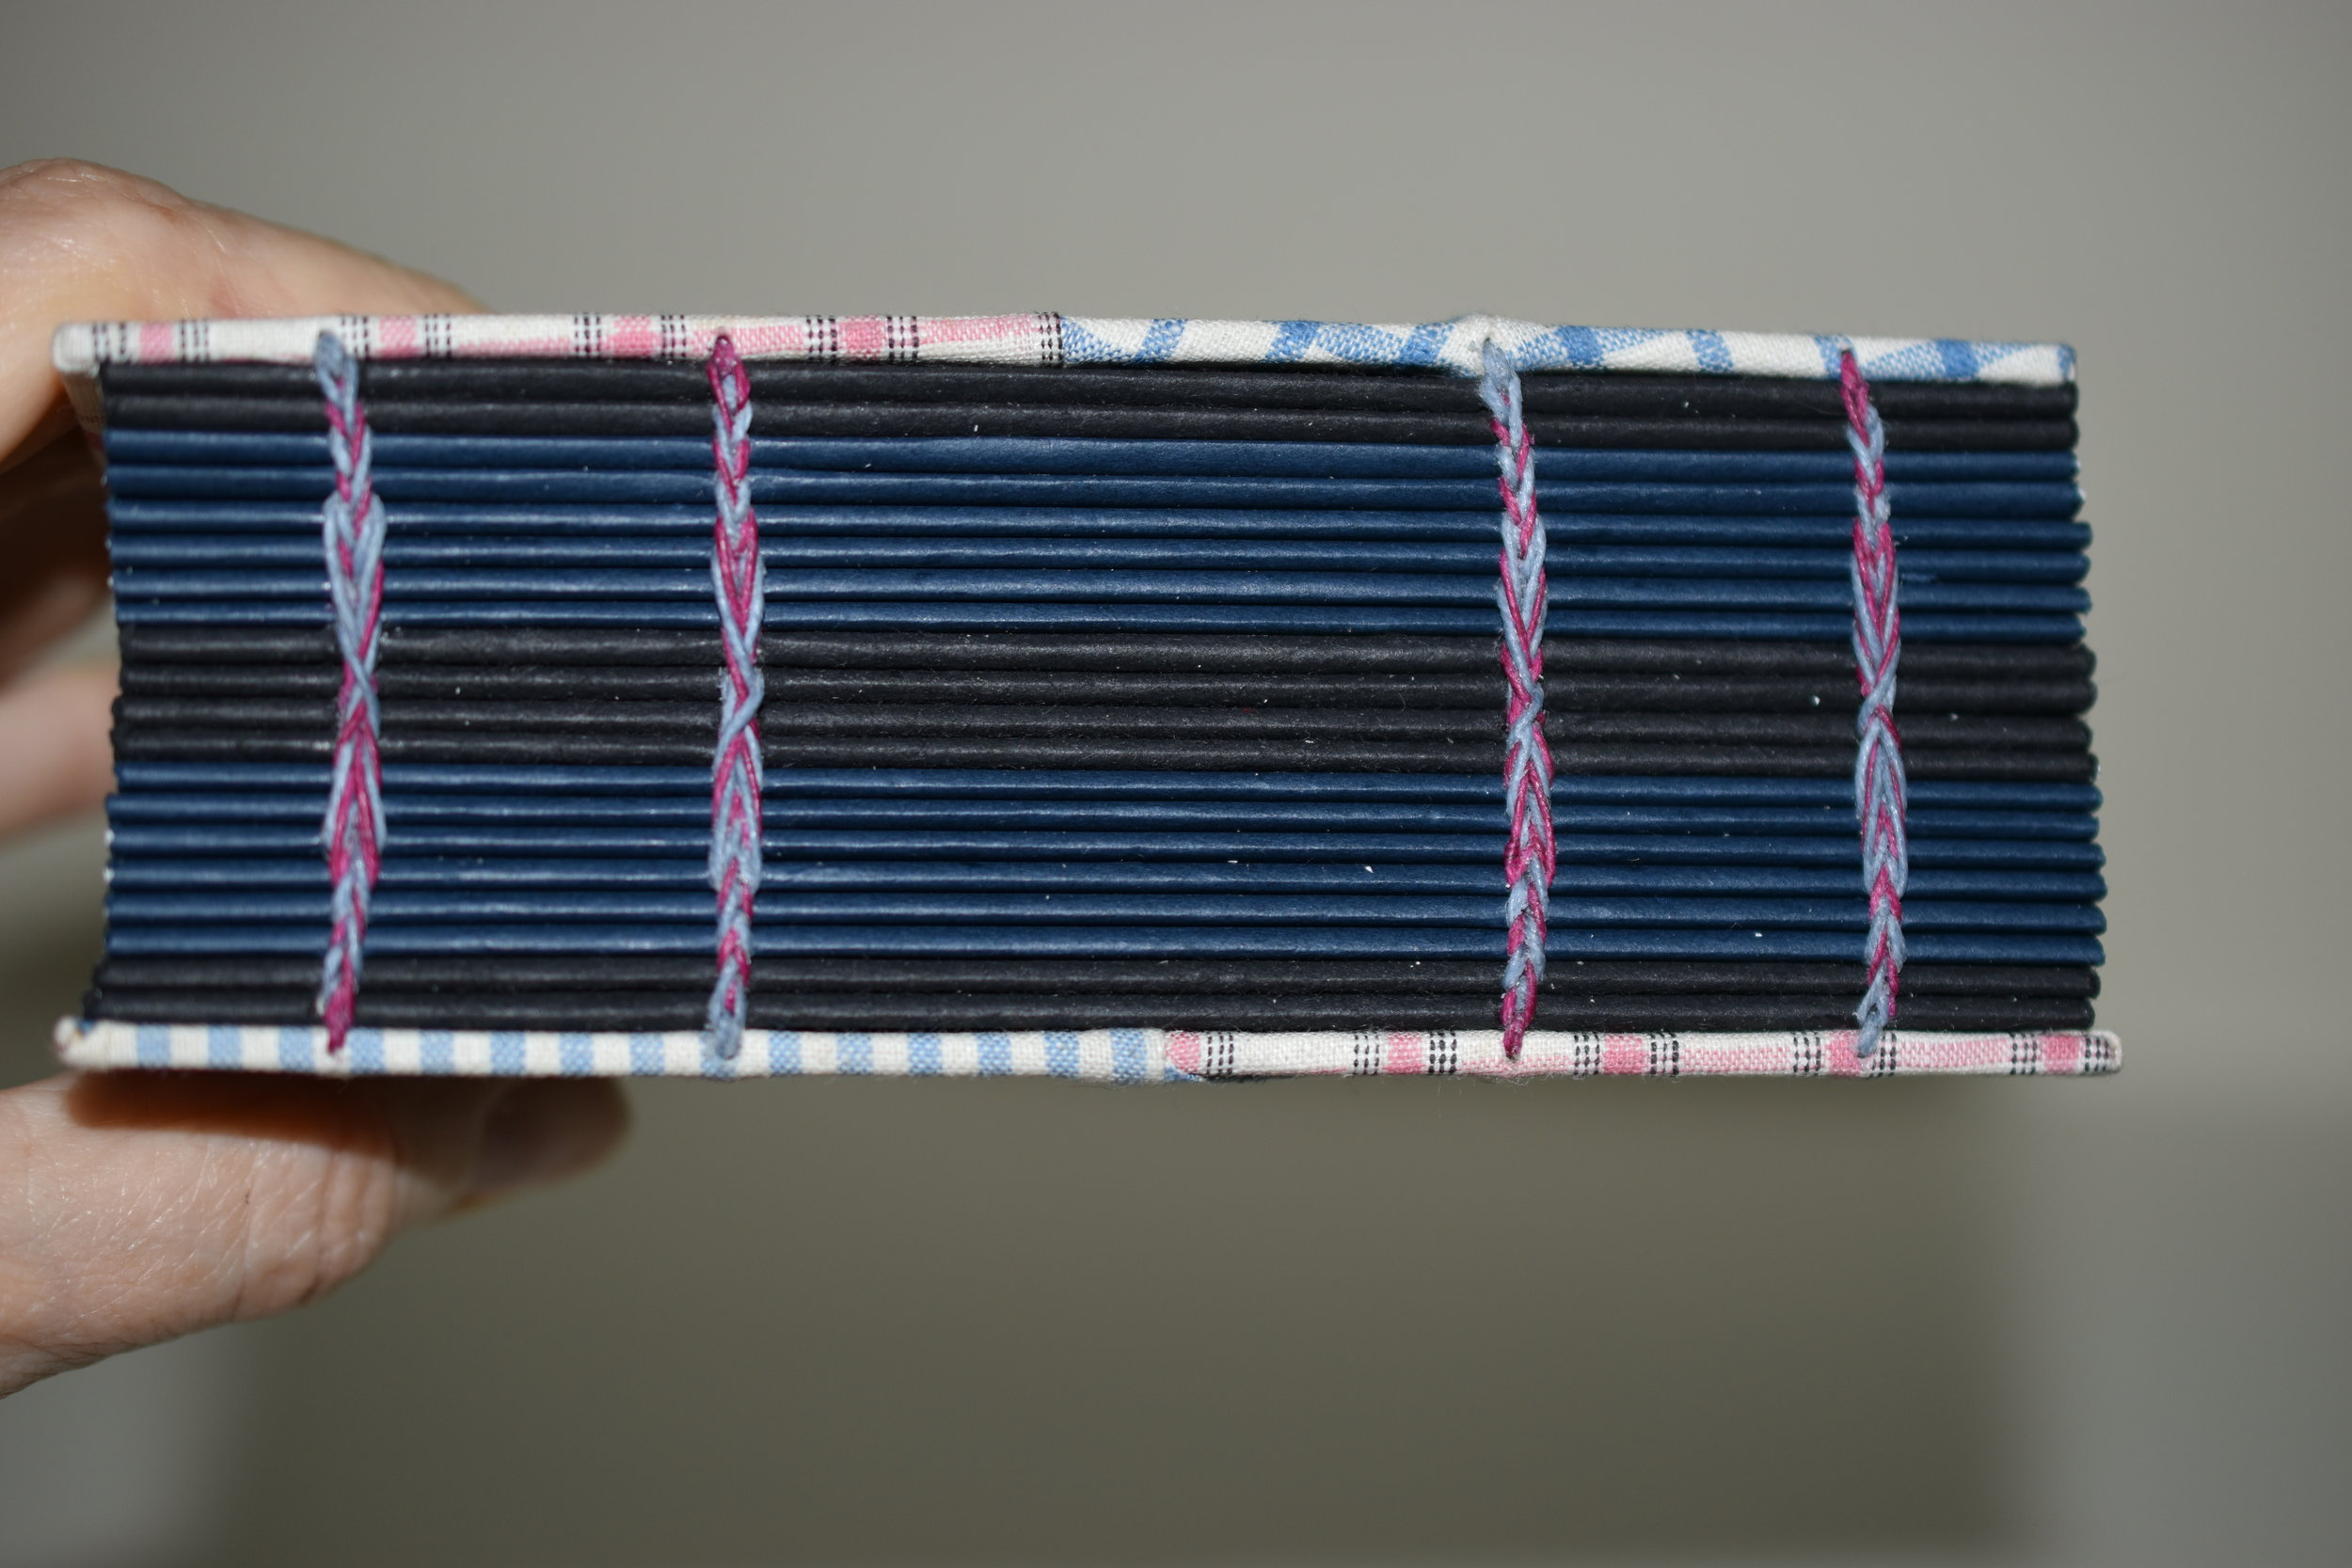 All sewn up….the contrasting colors of the waxed linen threads show up nicely on the navy and black end pages.